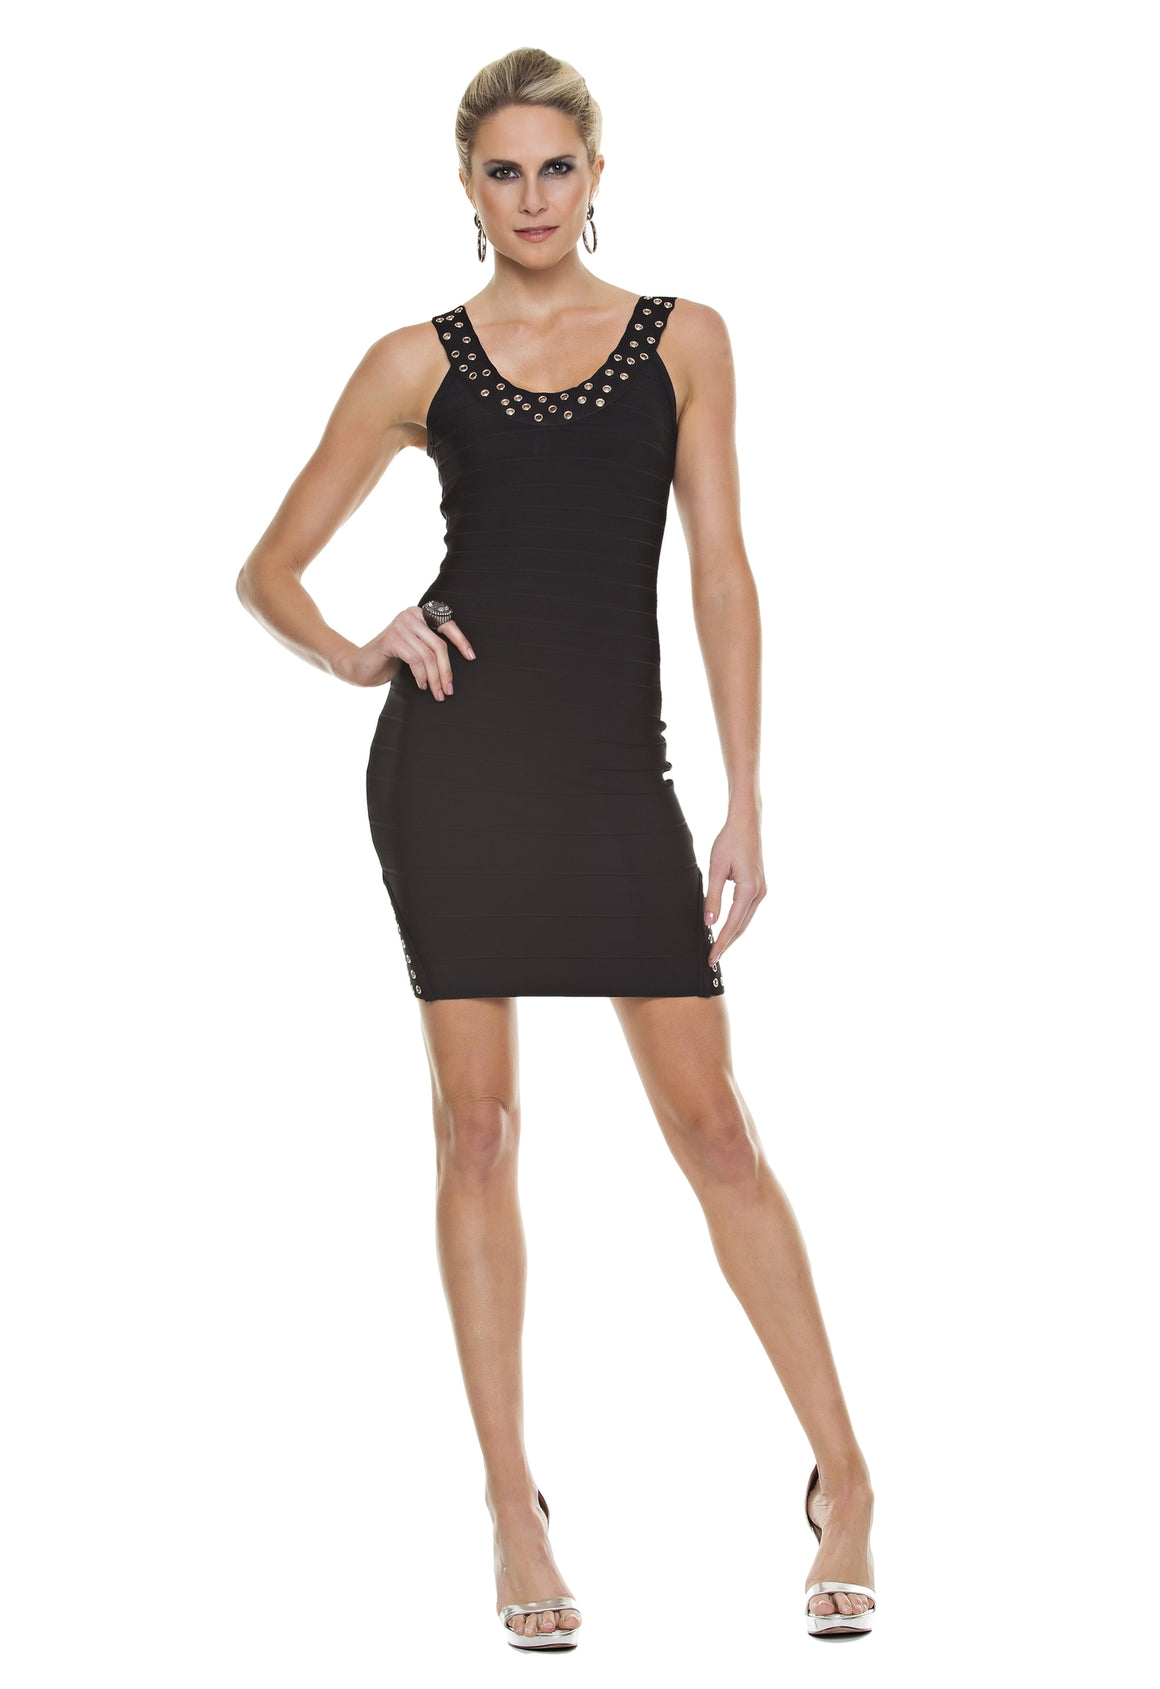 Grommet Bandage Dress